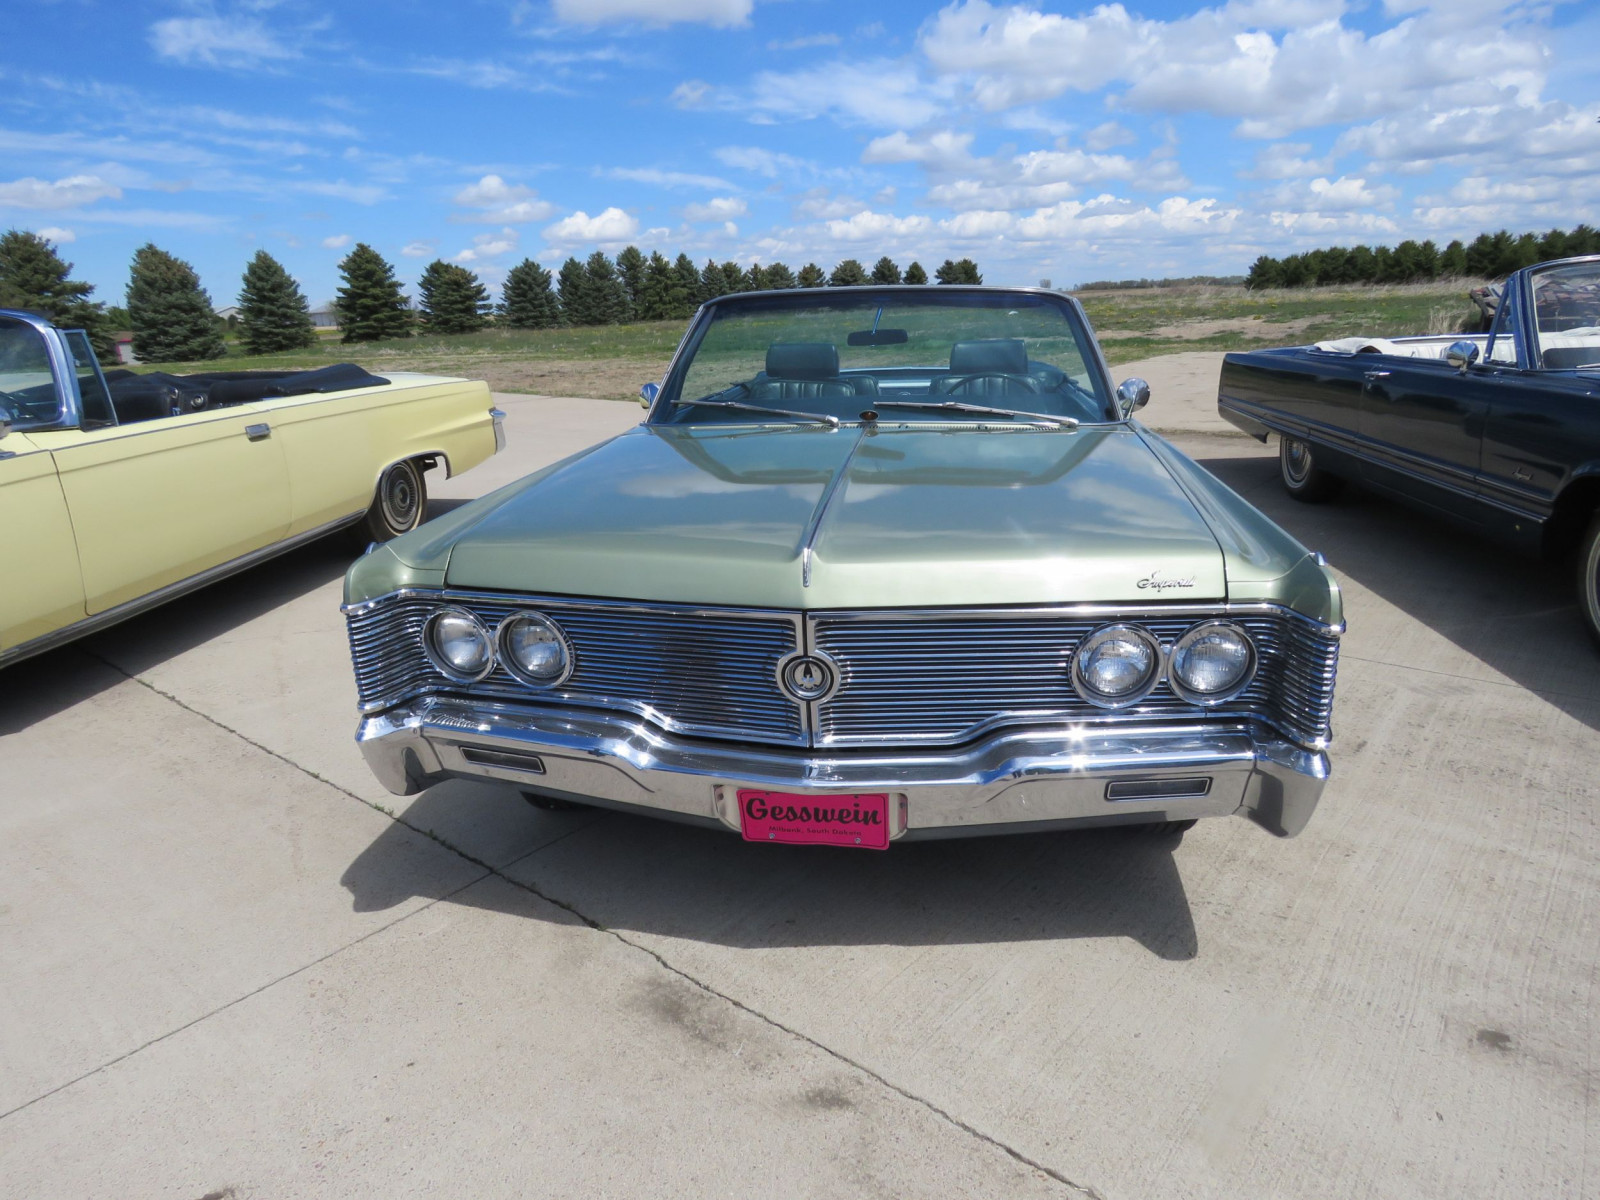 1968 Chrysler Imperial Crown Convertible - Image 2